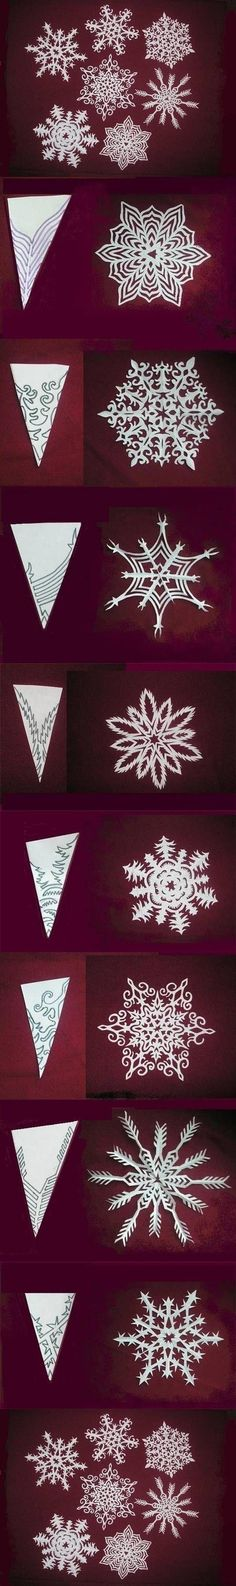 How to Make Snow Flakes by purtiful images | Purtiful images